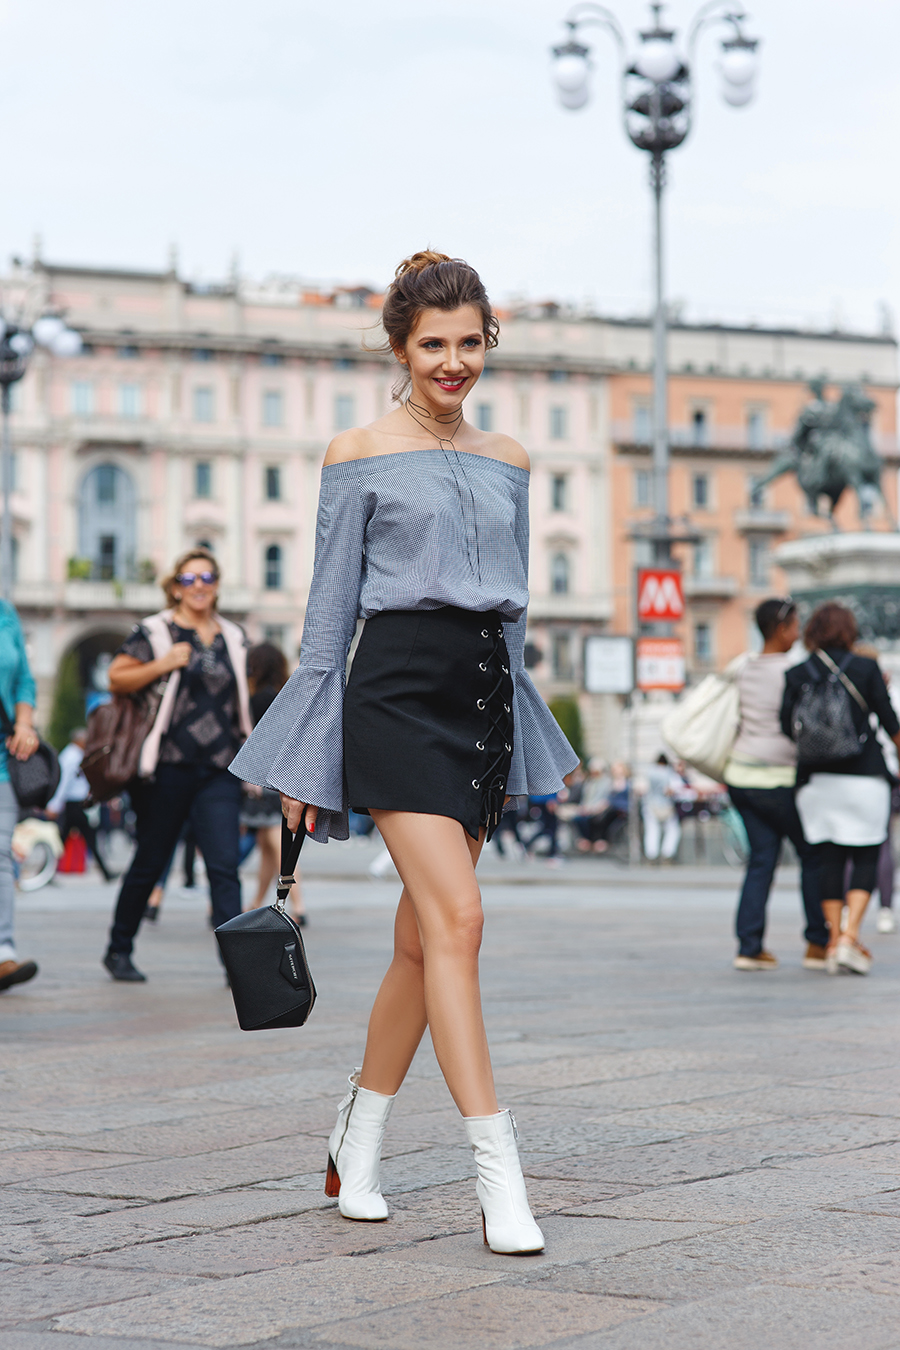 larisa costea, larisa costea blog, the mysterious girl, the mysterious girl blog, fashion blog, blogger, fashion, fashionista, it girl, travel blog, travel, traveler, ootd, lotd, outfit inspiration,look of the day,outfit of the day,what to wear,duomo, duomo di milano, milano,milan,milan fashion week,mfw,mfw ss 17,spring summer,chicwish,bell sleeve top,black and white top,black short skirt,kurt geiger boots,ankle boots,luisa via roma,givenchy bag,antigona, blackbag,transparent heelboots,galleria vittorio emanuele II, milan,milano,milan fashion week